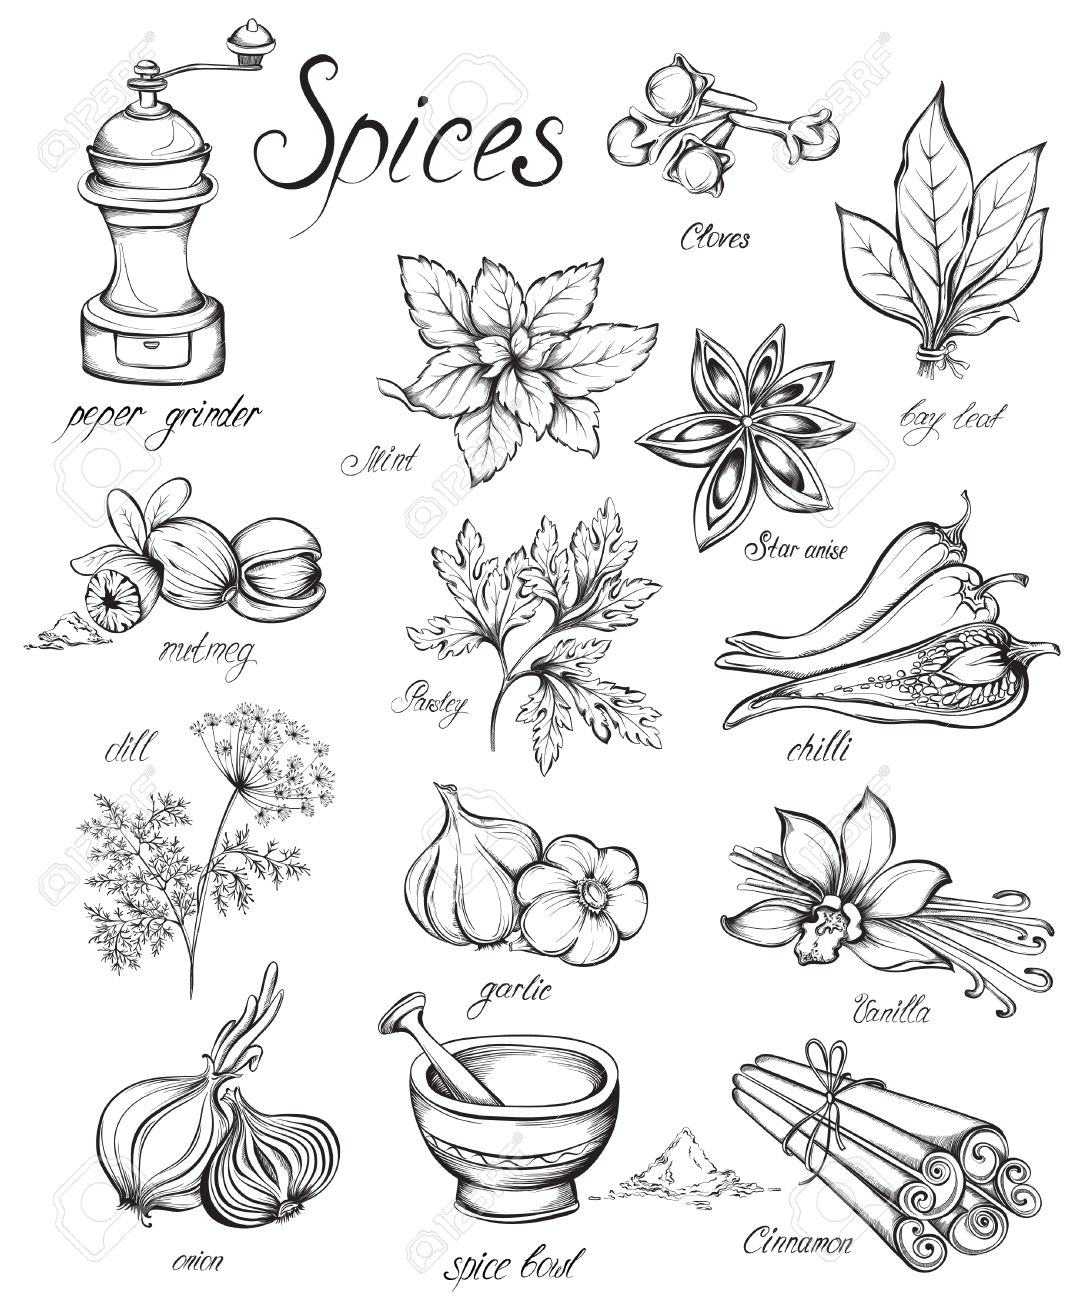 Black and white clipart kitchen supplies spices.